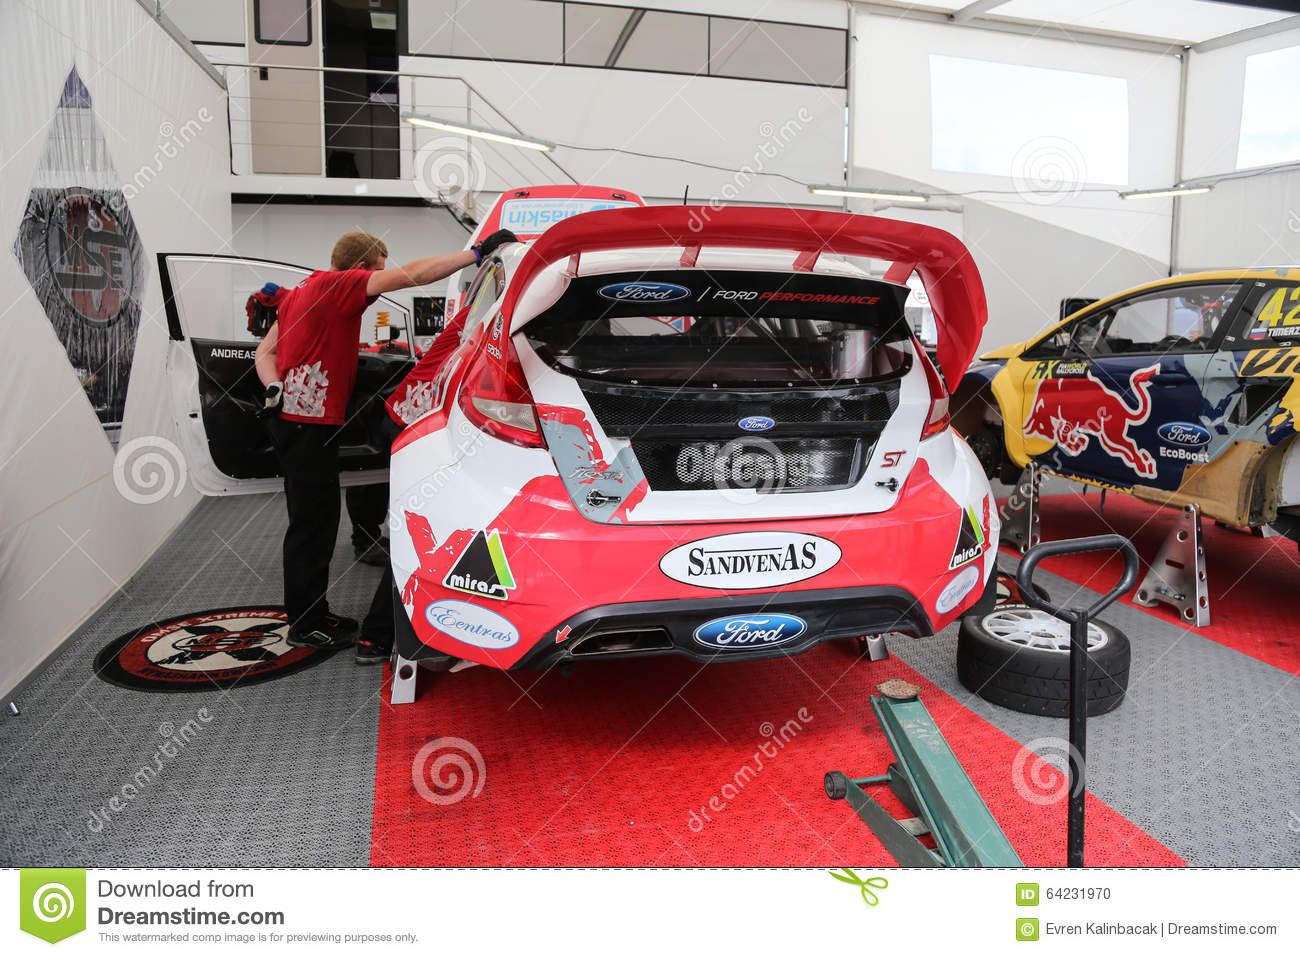 Fia world rallycross championship editorial image image for Garage ford st maximin